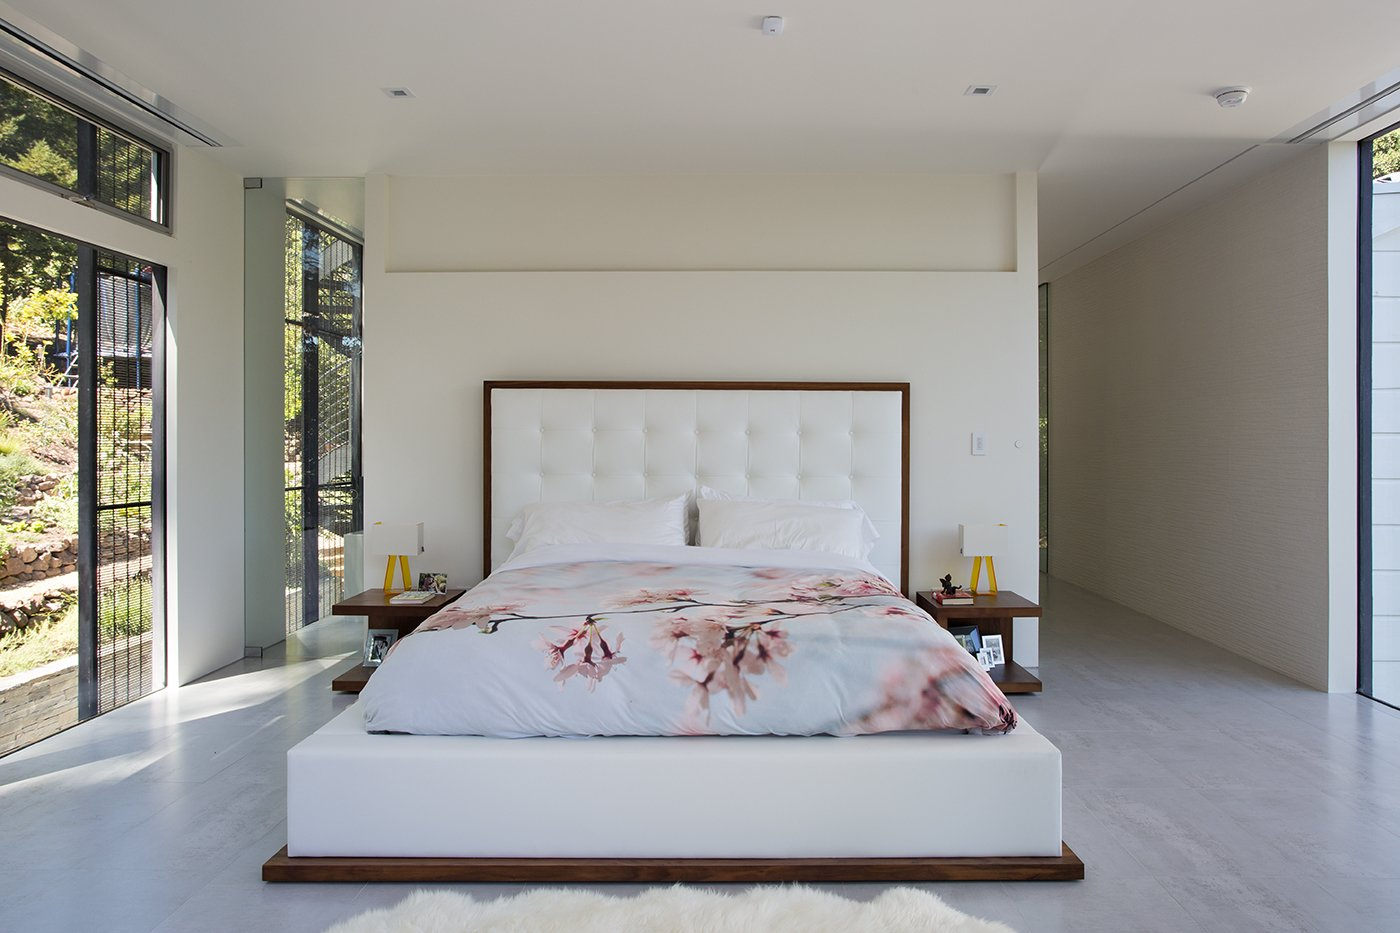 Bedroom and Bed Minimal Modern Addition  Sebastian and Tanja DiGrande's quest for natural light and open, modern design led them to Klopf Architecture in San Francisco. Working hand-in-hand with homeowner/designer Tanja DiGrande, Klopf collaborated on a modern addition to the rear of a traditional-style home. The idea was to depart from the original style completely to draw a distinction between the original house and any later additions, as well as observe a very minimal, clean, gallery-like modern style against which changing daylight, art, furniture, and of course the people provide the color and motion.  With its dark gray stuccoed walls, dark steel railing, and floor-to-ceiling windows, the exterior of the addition is at the same time an open, modern box as well as a receding volume that acts almost as a backdrop for the house, receding visually out of respect for the original home. From the interior, windows bring in nature and views from all around the lush property. They also allow views of the original house. Up on the roof deck the views magnify. The owners use a boom and crank to bring up food and drinks when entertaining!  Inside, the simple clean-lined spaces showcase the couple's minimal, modern taste. The open bathroom epitomizes the clean, minimal style of the addition. On the exterior, steel elements bring a more industrial modern feeling to the addition from the rear.   Klopf Architecture